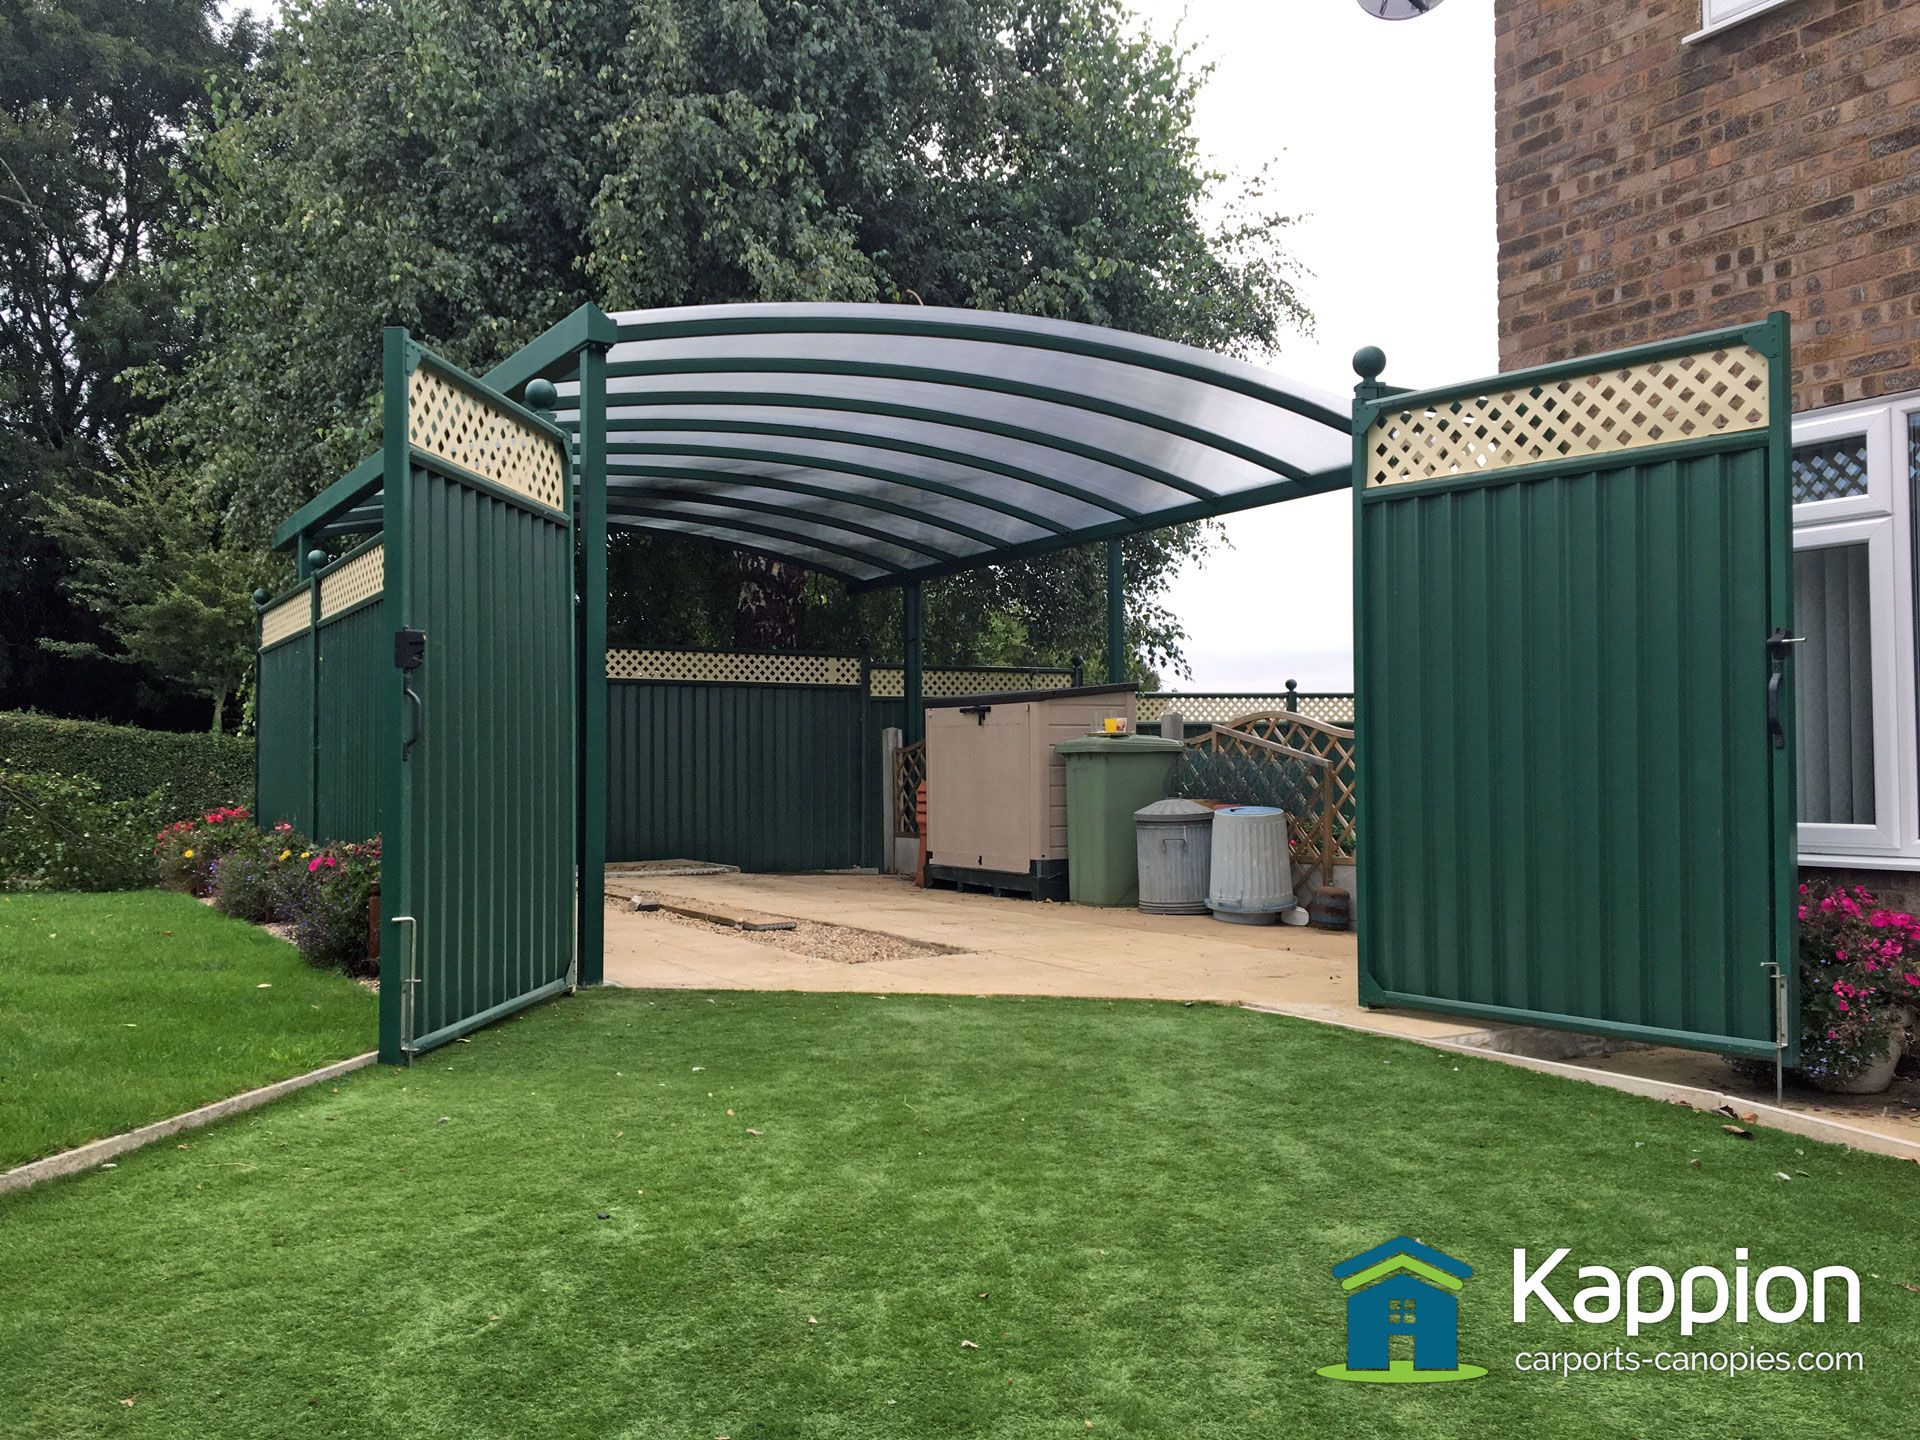 Contemporary caravan carport canopy designed to blend in